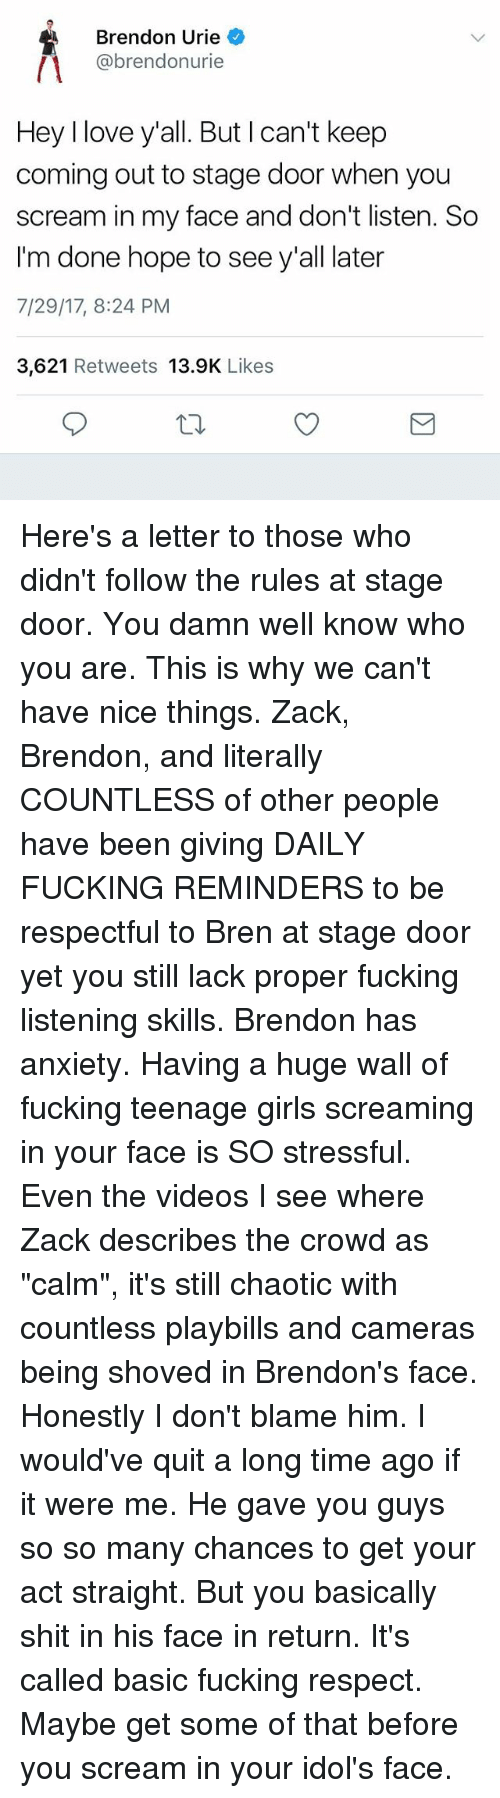 """Fucking, Girls, and Love: Brendon Urie  @brendonurie  Hey I love y'all. But I can't keep  coming out to stage door when you  scream in my face and don't listen. So  I'm done hope to see y'all later  7/29/17, 8:24 PM  3,621 Retweets 13.9K Likes Here's a letter to those who didn't follow the rules at stage door. You damn well know who you are. This is why we can't have nice things. Zack, Brendon, and literally COUNTLESS of other people have been giving DAILY FUCKING REMINDERS to be respectful to Bren at stage door yet you still lack proper fucking listening skills. Brendon has anxiety. Having a huge wall of fucking teenage girls screaming in your face is SO stressful. Even the videos I see where Zack describes the crowd as """"calm"""", it's still chaotic with countless playbills and cameras being shoved in Brendon's face. Honestly I don't blame him. I would've quit a long time ago if it were me. He gave you guys so so many chances to get your act straight. But you basically shit in his face in return. It's called basic fucking respect. Maybe get some of that before you scream in your idol's face."""